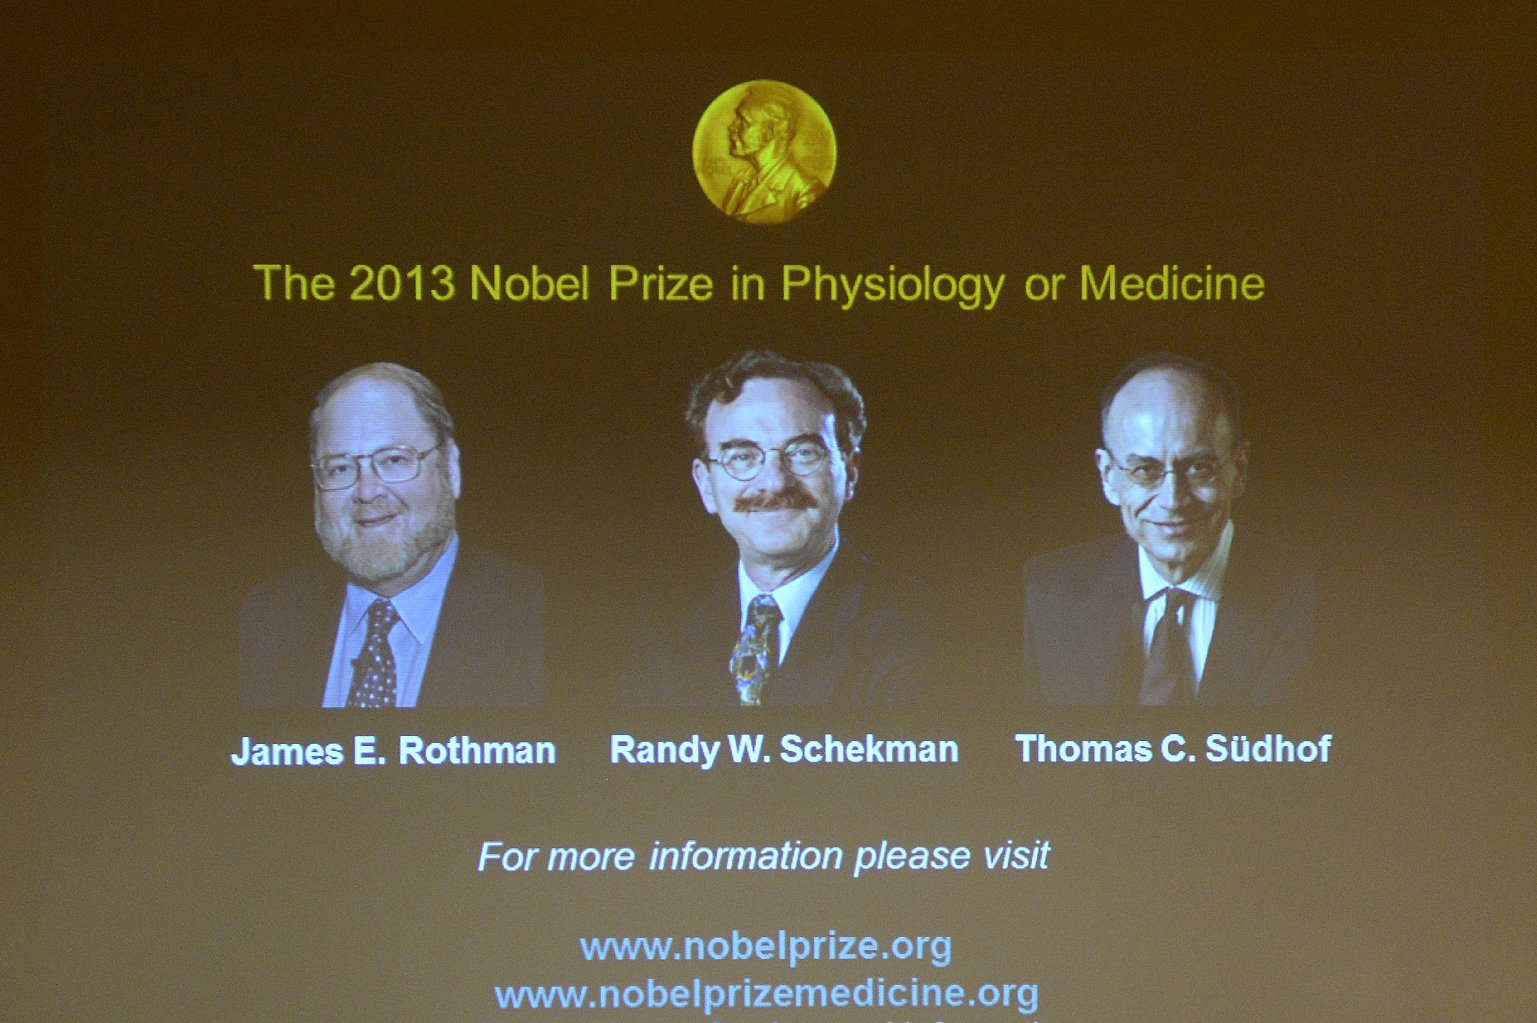 A screen displays photos of, from left, James E. Rothman of Yale, Randy Schekman of UC Berkeley, and Thomas Südhof of Stanford. The trio is awarded the Nobel Prize for Medicine or Physiology for their discoveries of machinery regulating vesicle traffic, a major transport system in cells. (Jonathan Nackstrand/AFP-/Getty Images)